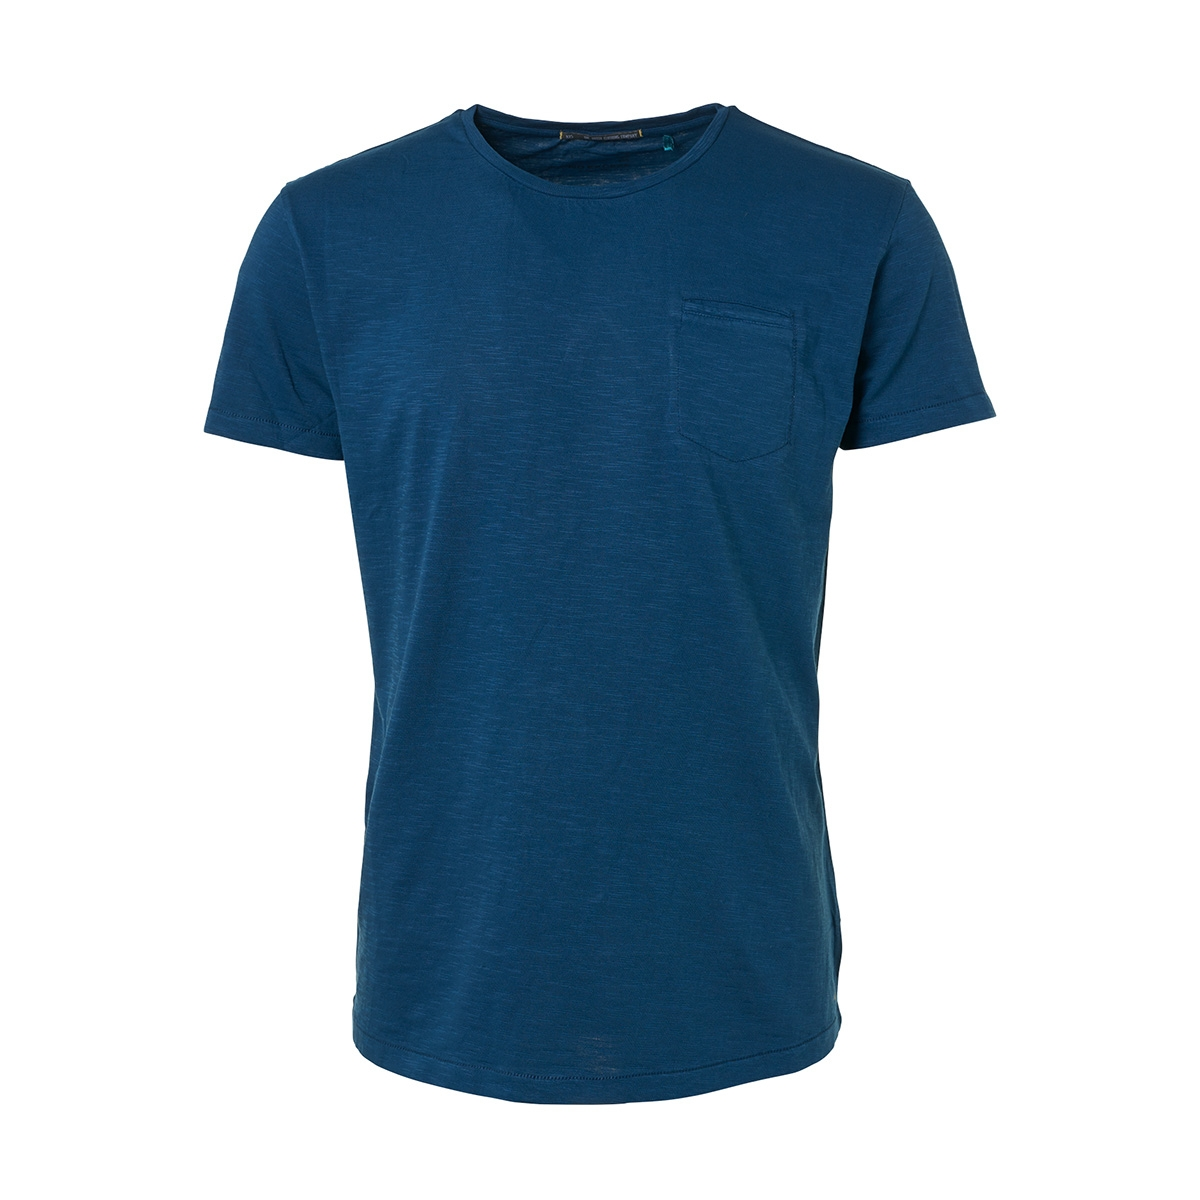 slub jersey t shirt 91350513 no-excess t-shirt 132 shadow blue